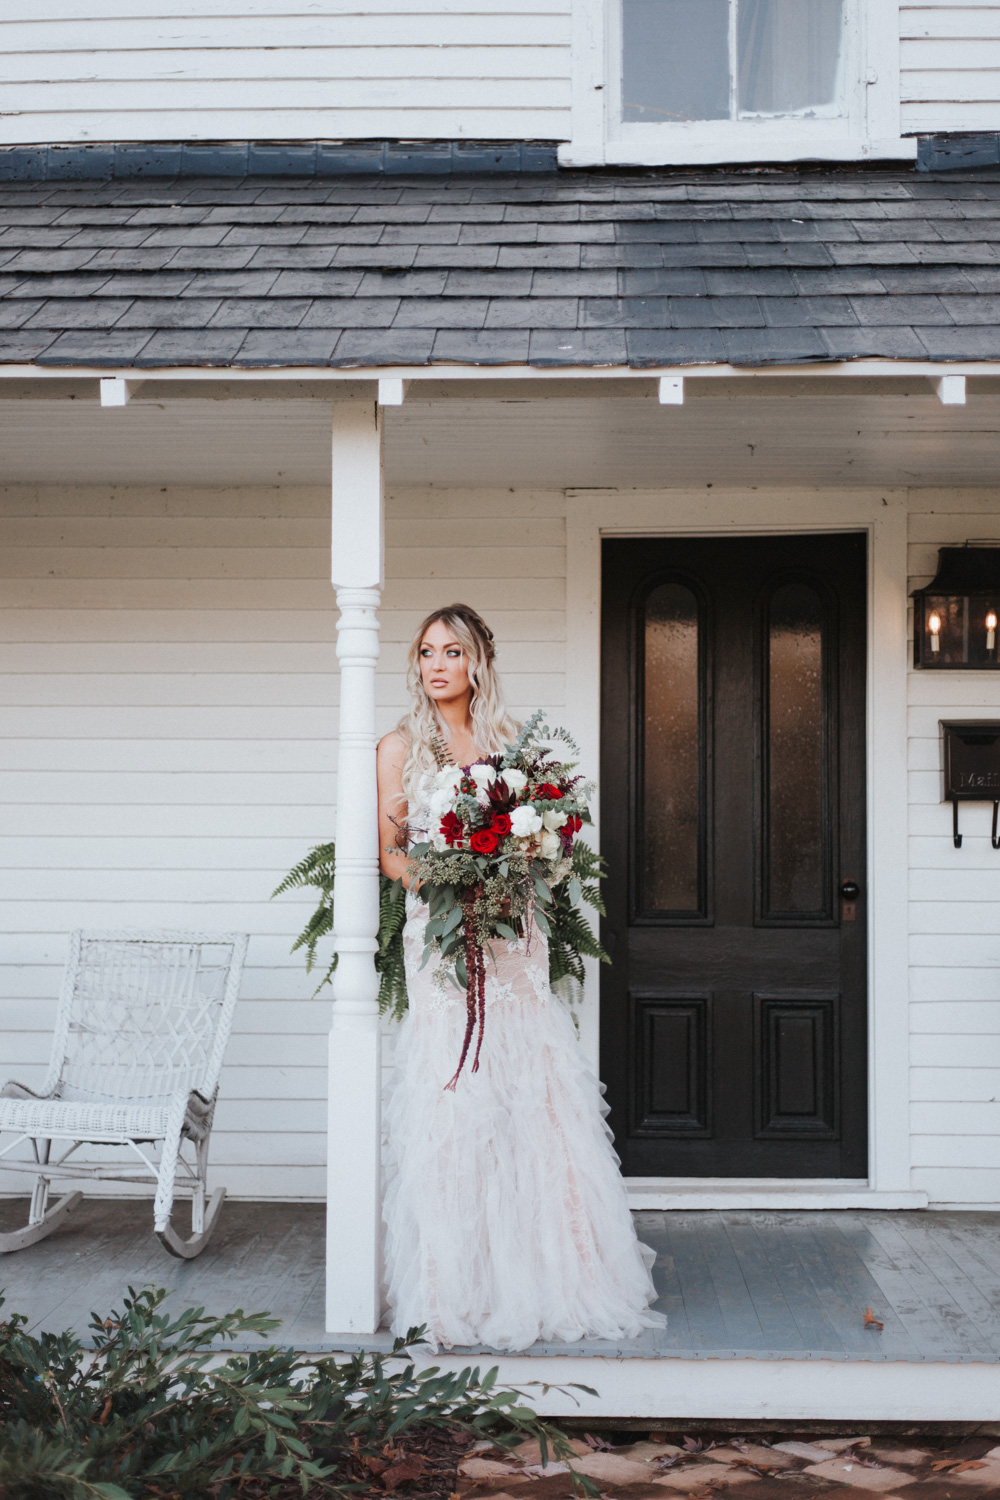 willstella farm styled bride and groom shoot at kernersville wedding